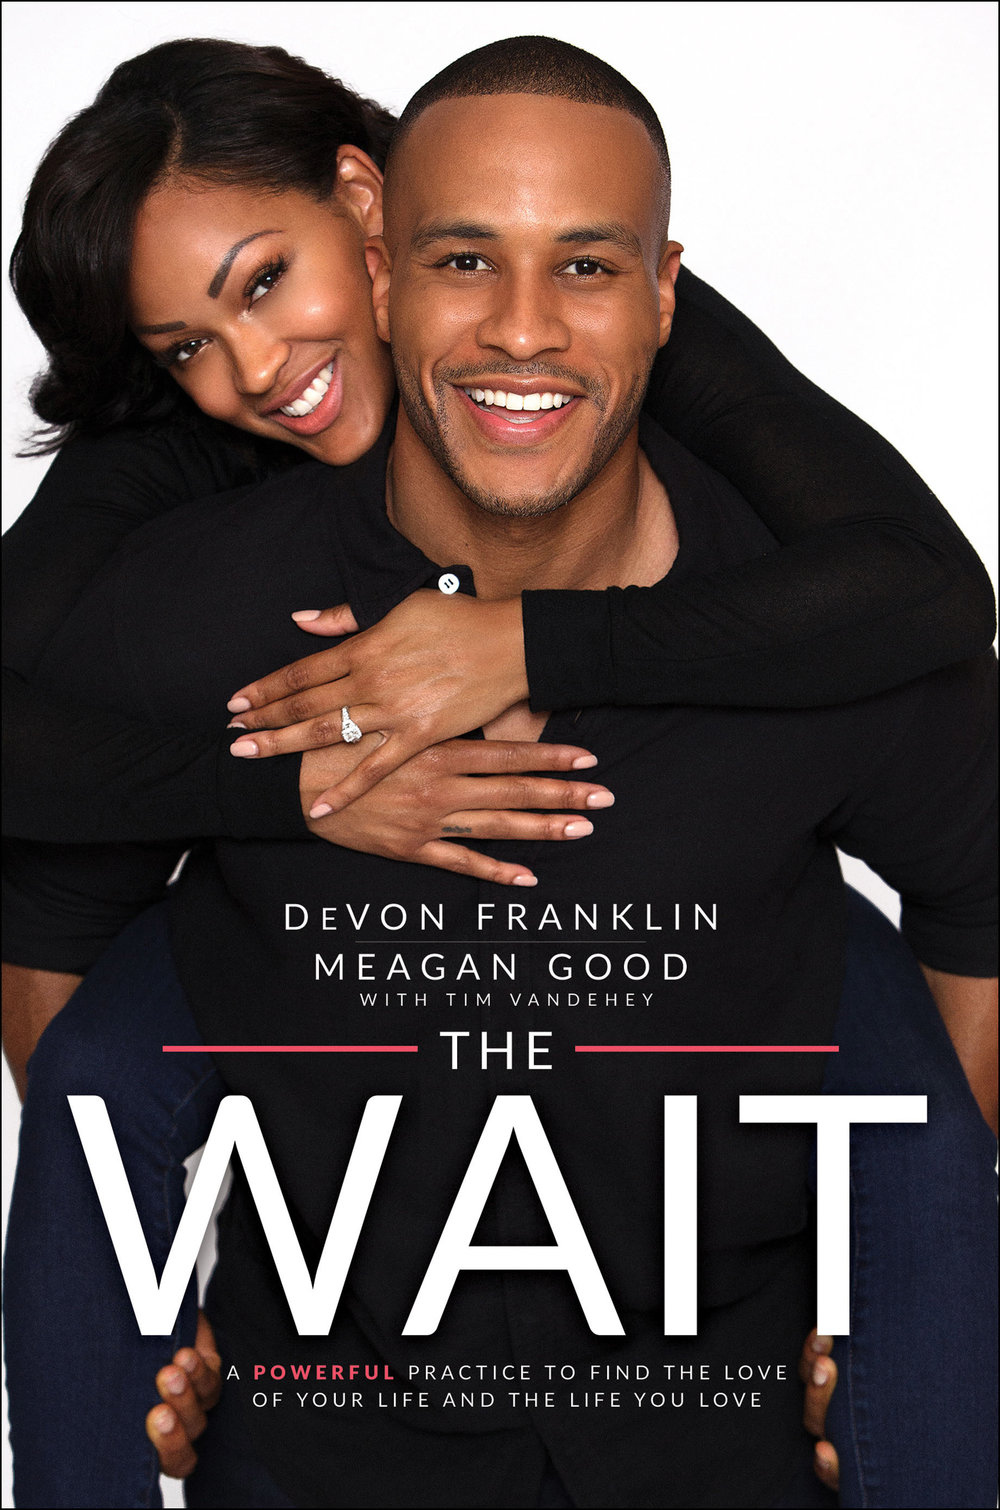 TheWait cover.jpg